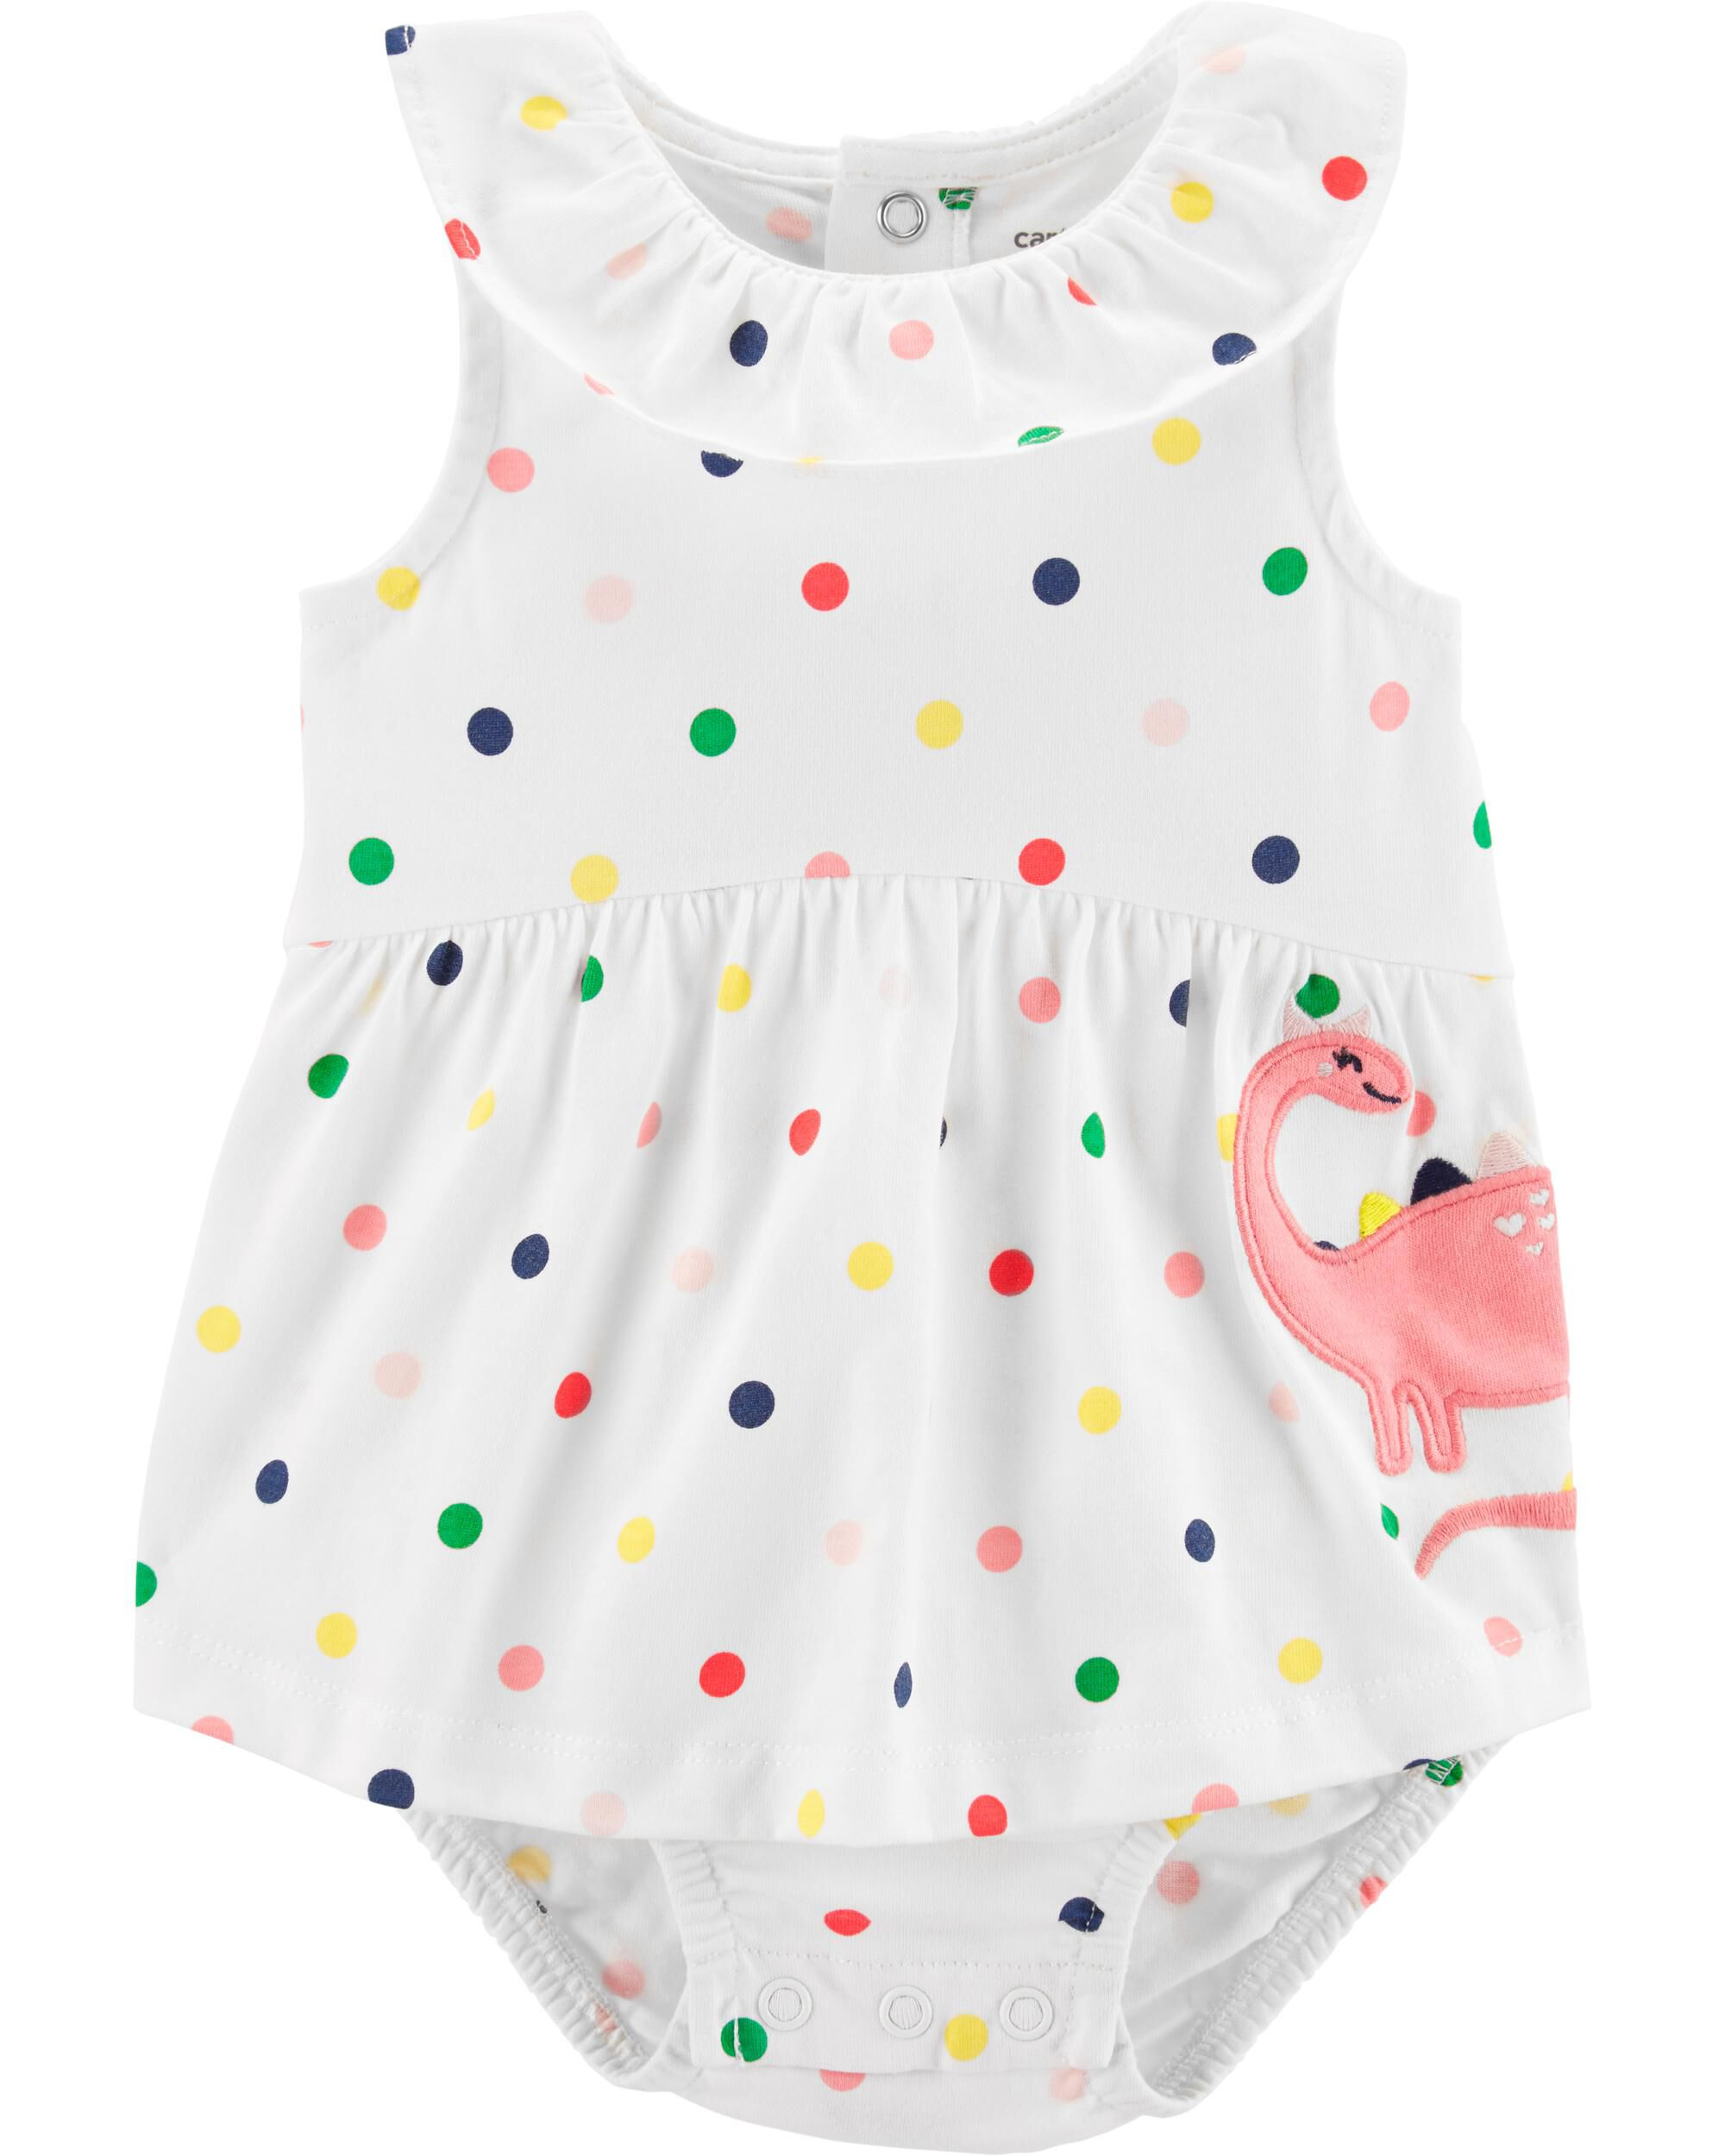 Girls' Clothing (0-24 Months) Dresses Next Baby Girl Summer Dress With Matching Sun Hat Size:0-3months Selected Material